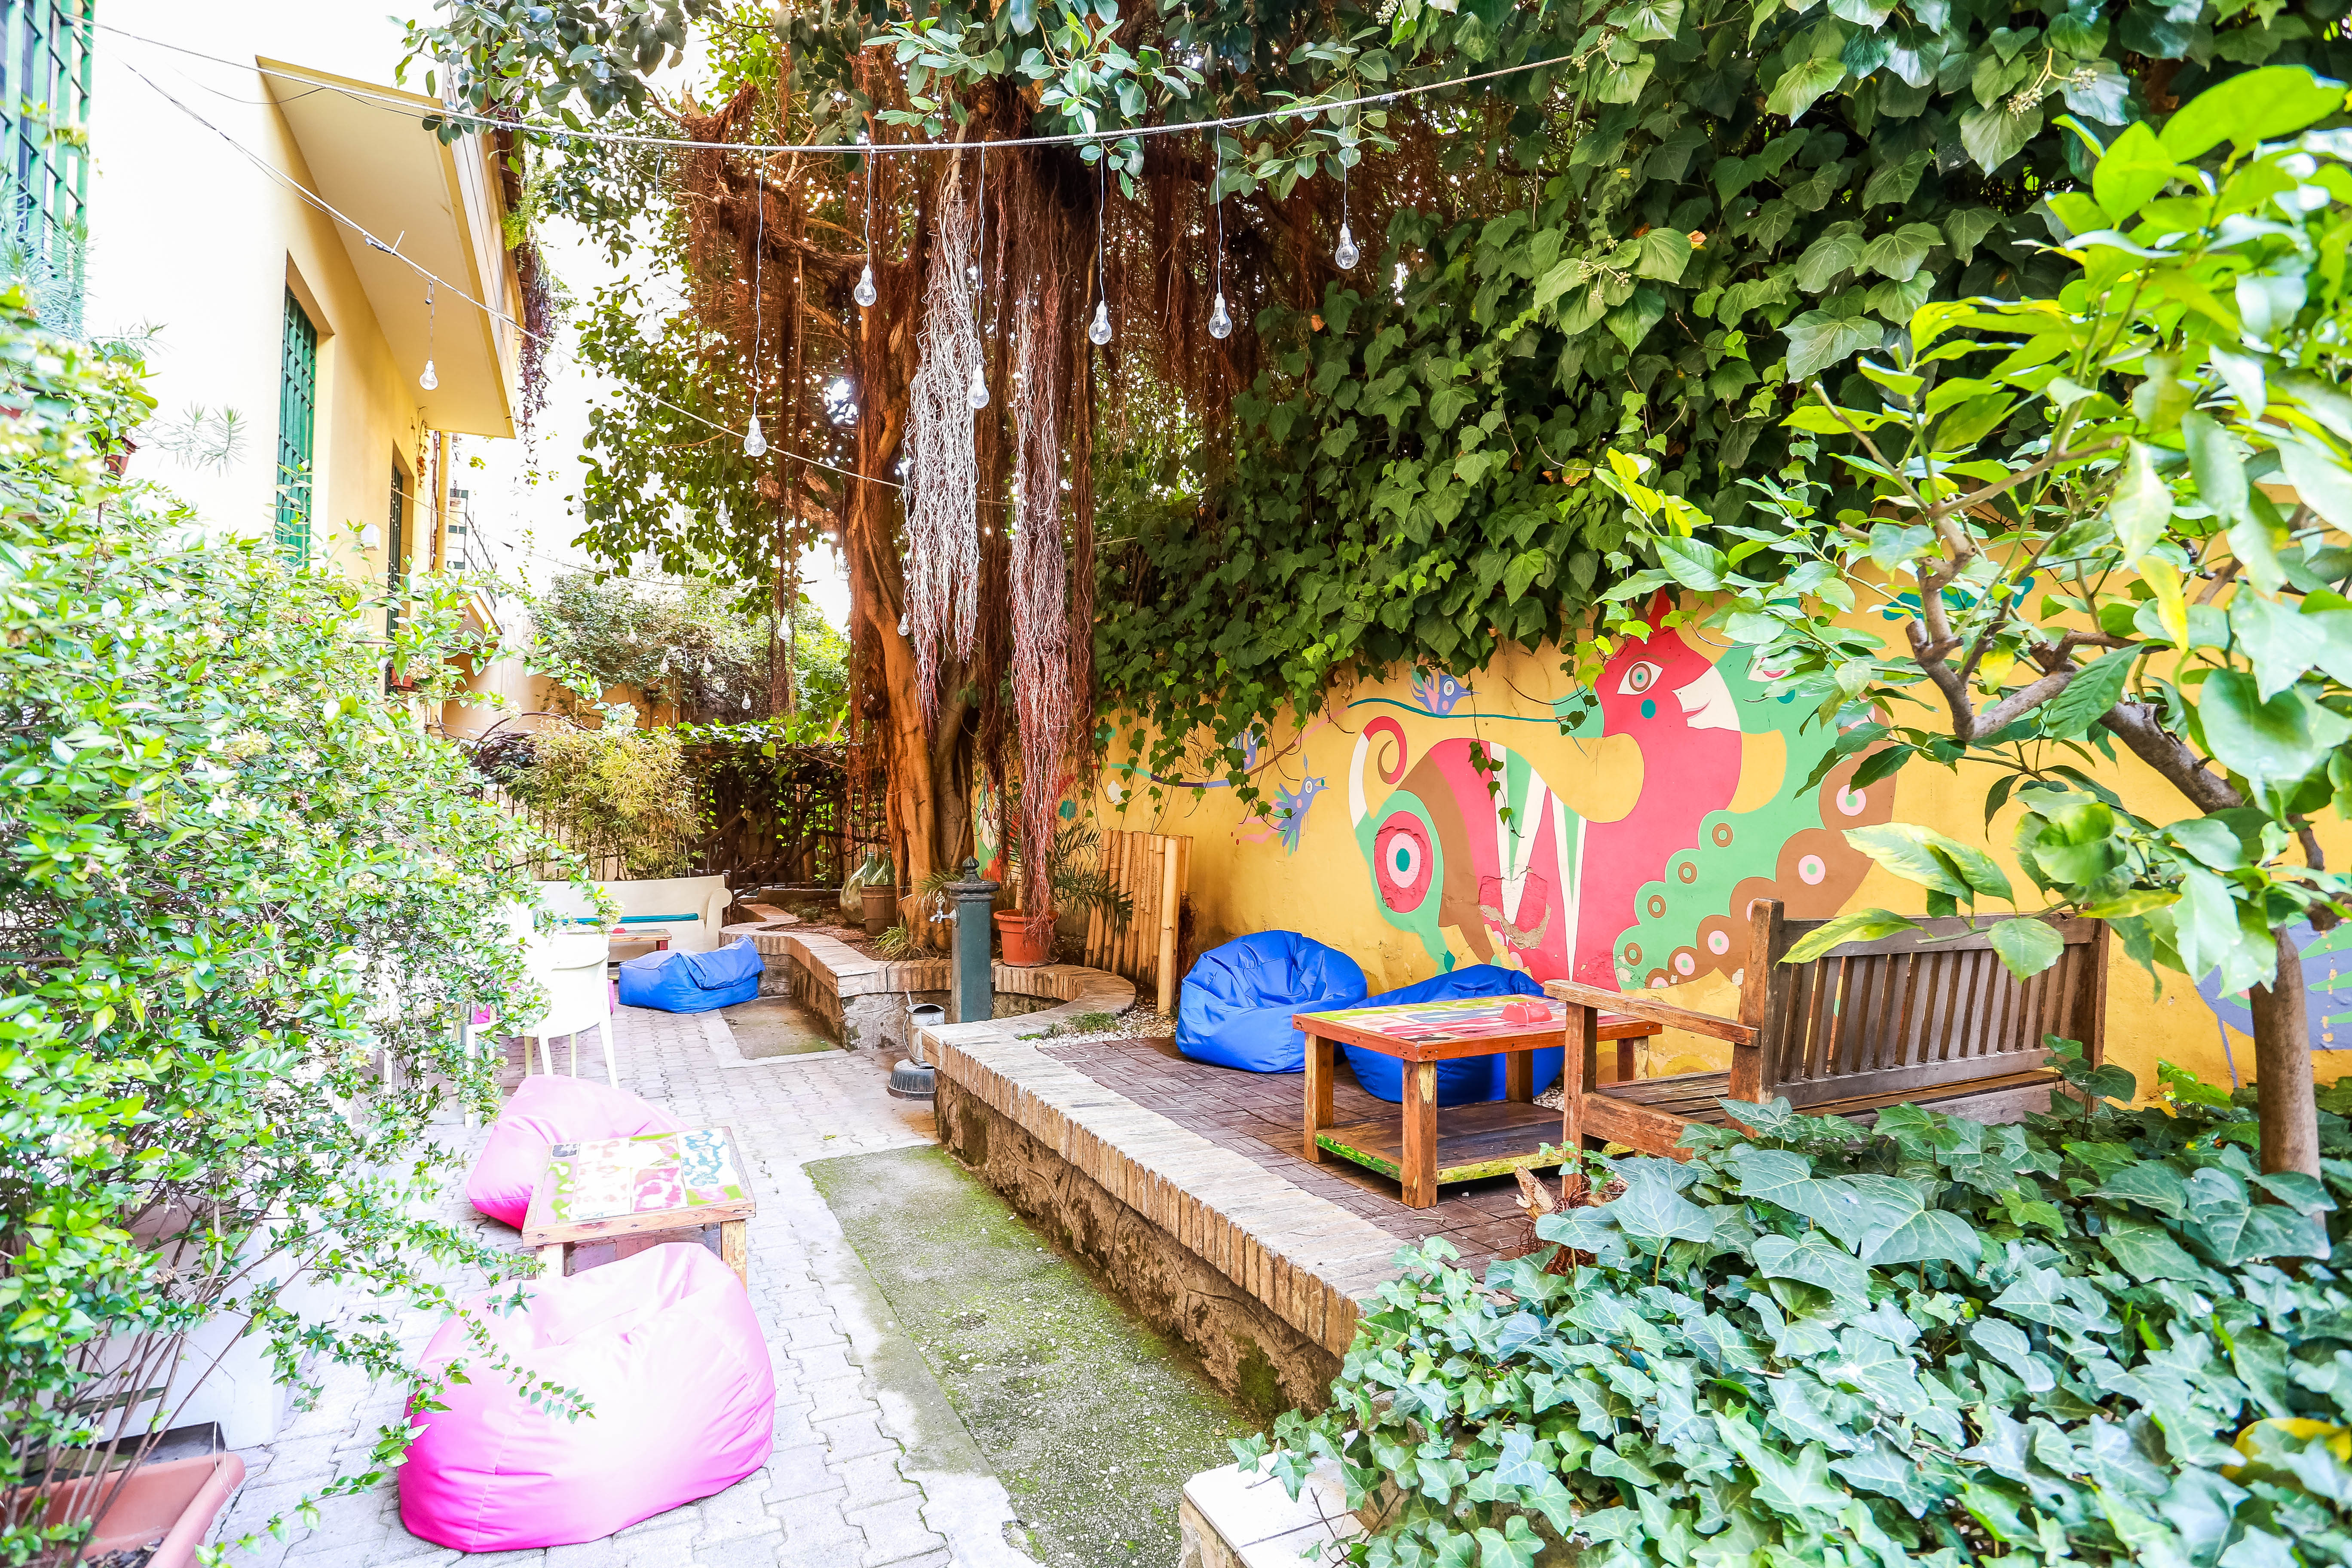 The garden of the Beehive Hostel in Rome